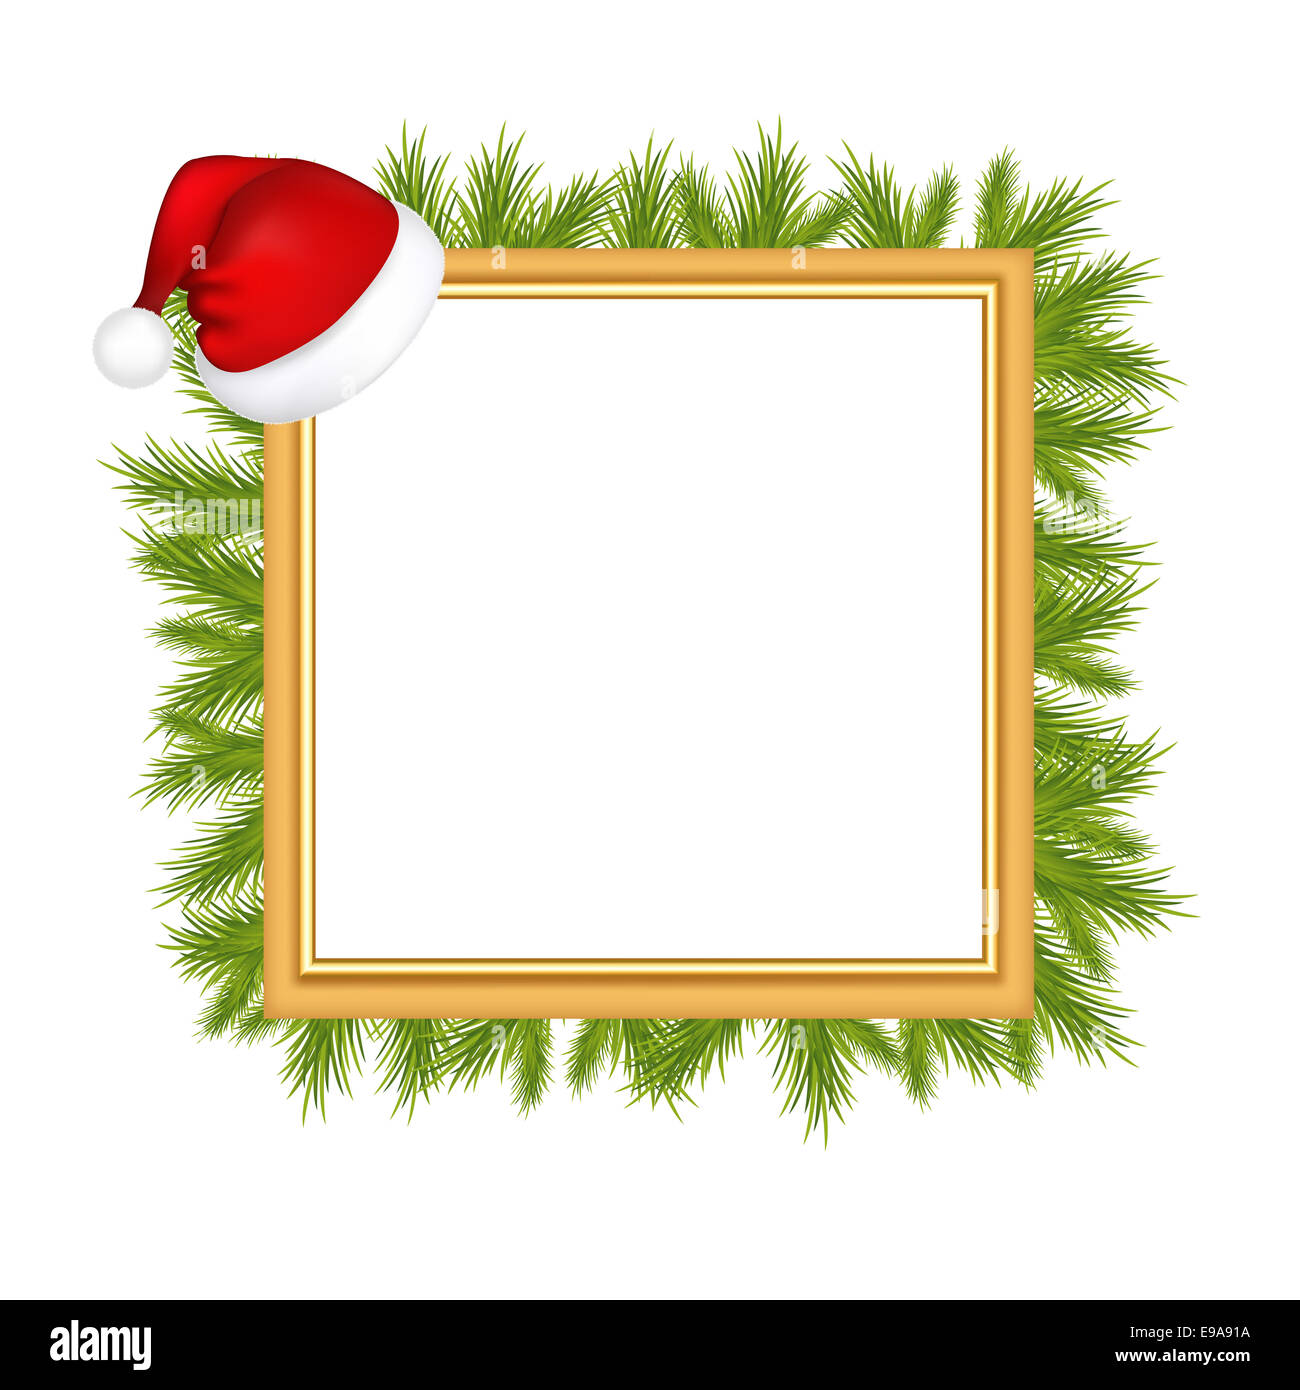 Framework For Photo With Santa Claus Hat - Stock Image